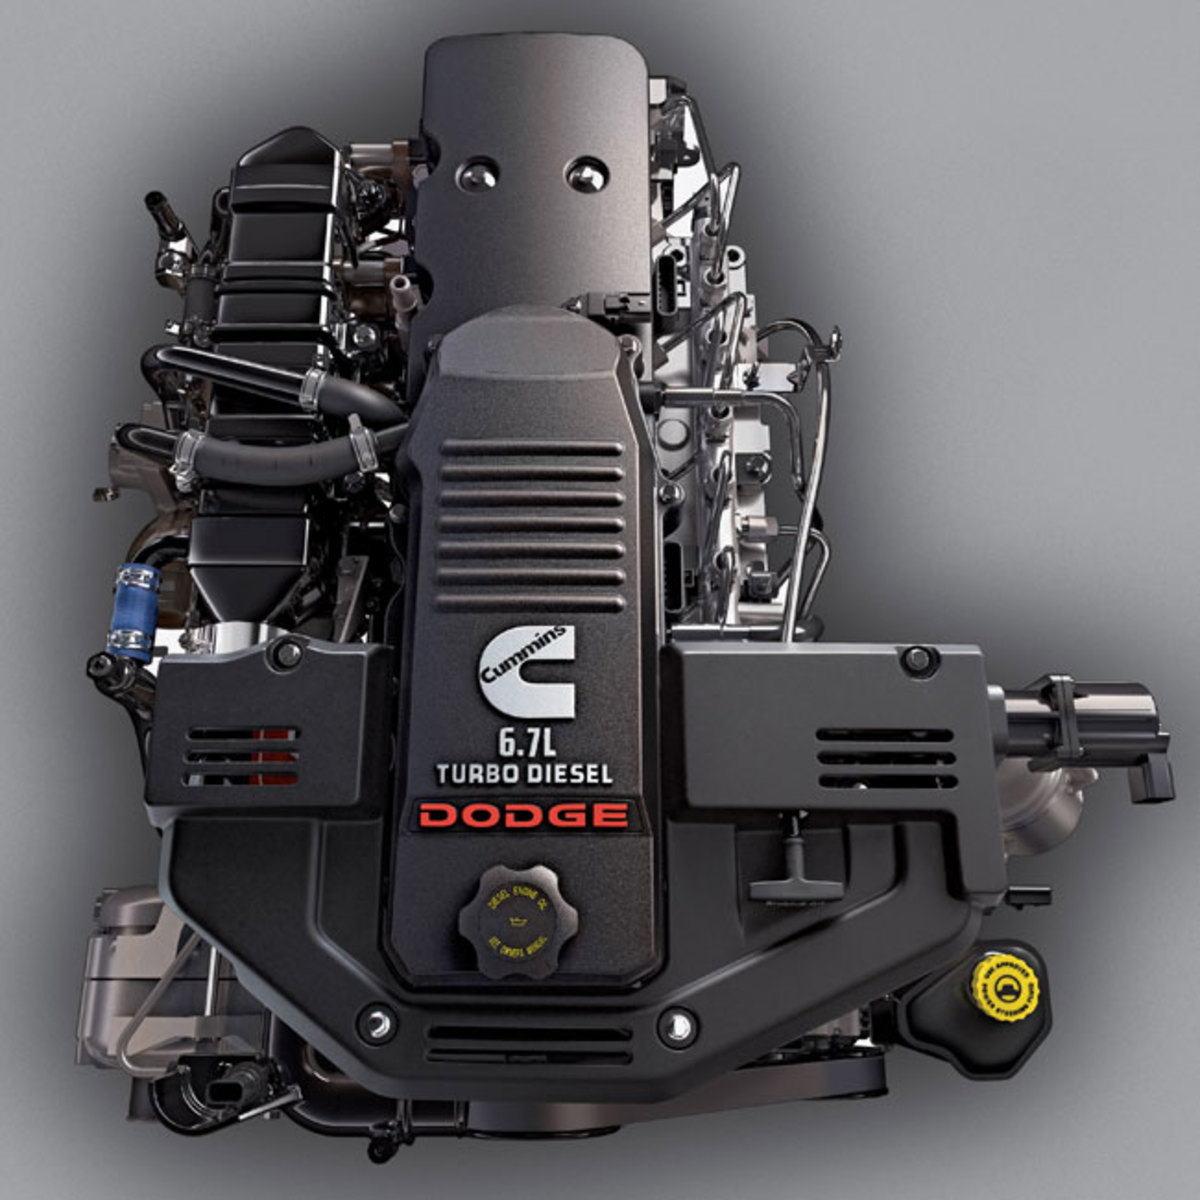 Changing Cummins Injectors: How To Replace An Injector In The Cummins 6.7L Engine